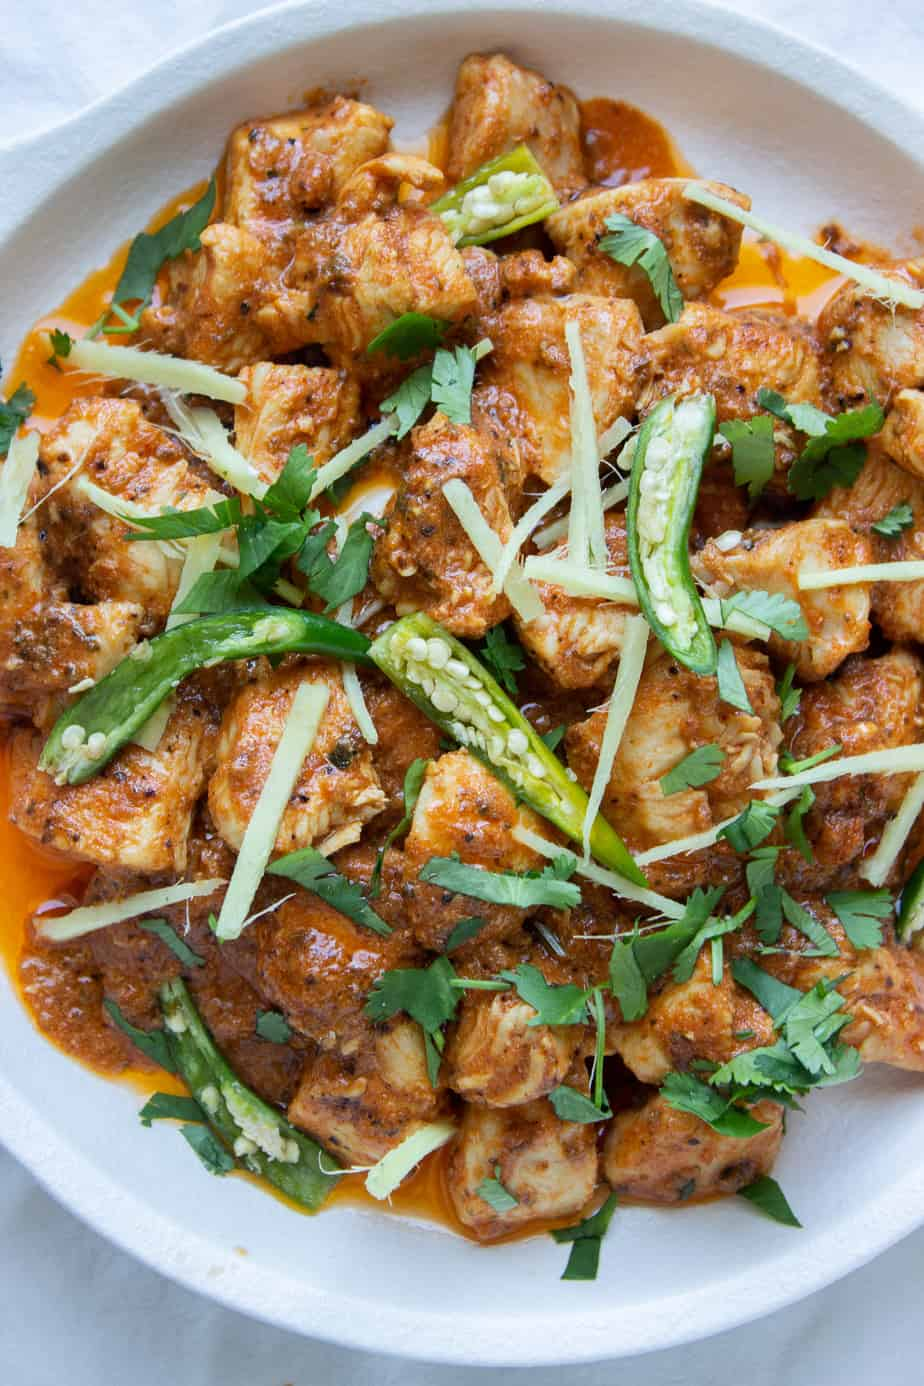 a close up of a dish of Karhai Chicken with green chilies,ciilantro and ginge